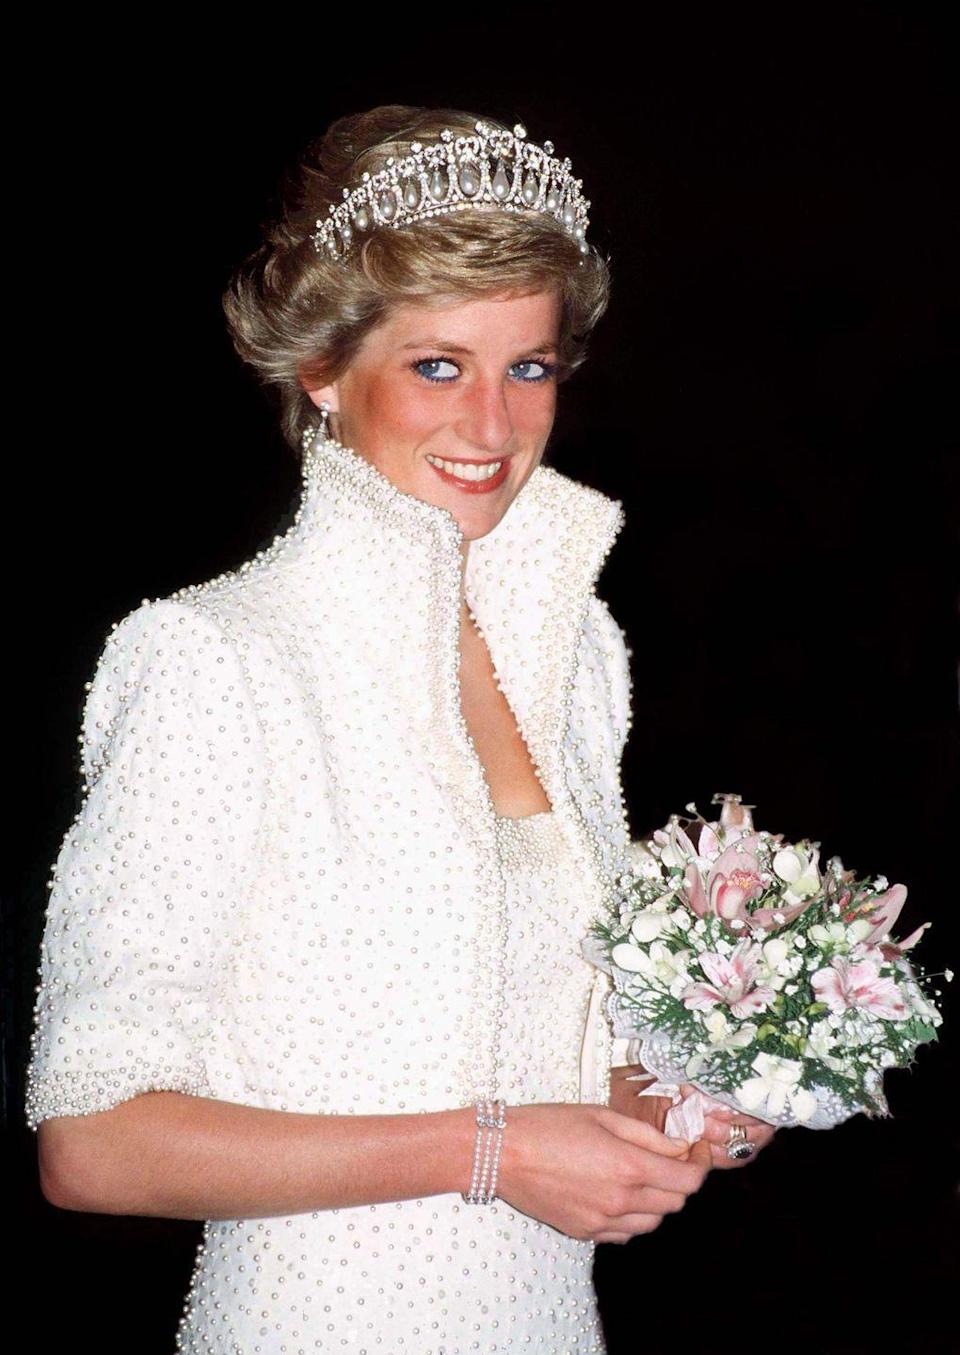 <p>For this outfit, Princess Diana went all in on the pearls. The white, pearl-embellished dress and jacket combination was created by Catherine Walker, one of Diana's favorite fashion designers. To complete this look, which Diana wore on a visit to Hong Kong, the Princess wore the Lover's Knot tiara and a three-strand pearl bracelet. </p>